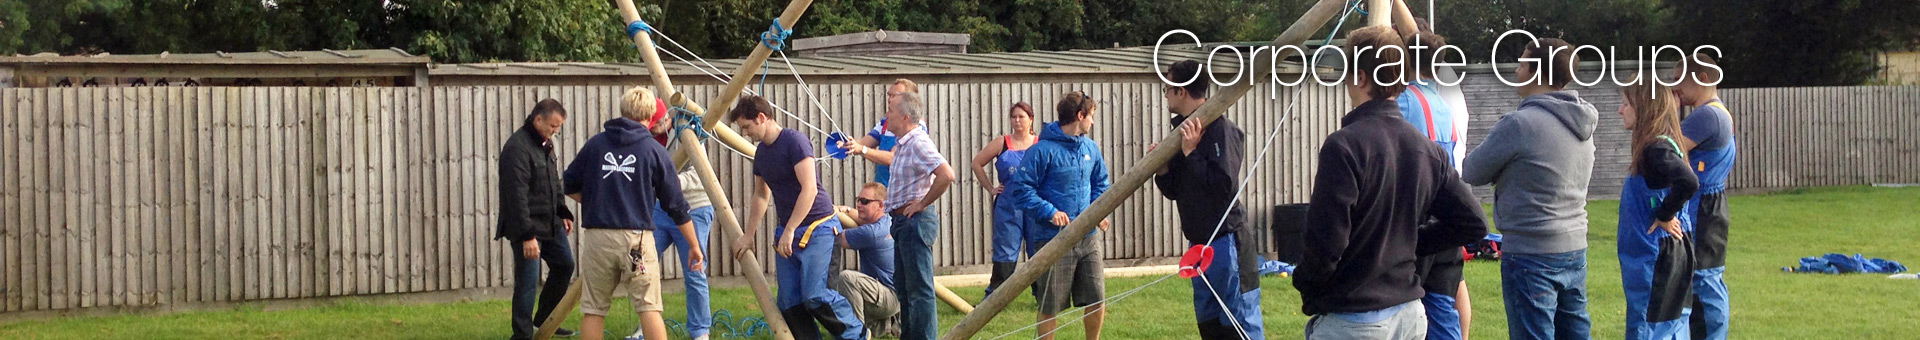 team building activities days out at South Cerney